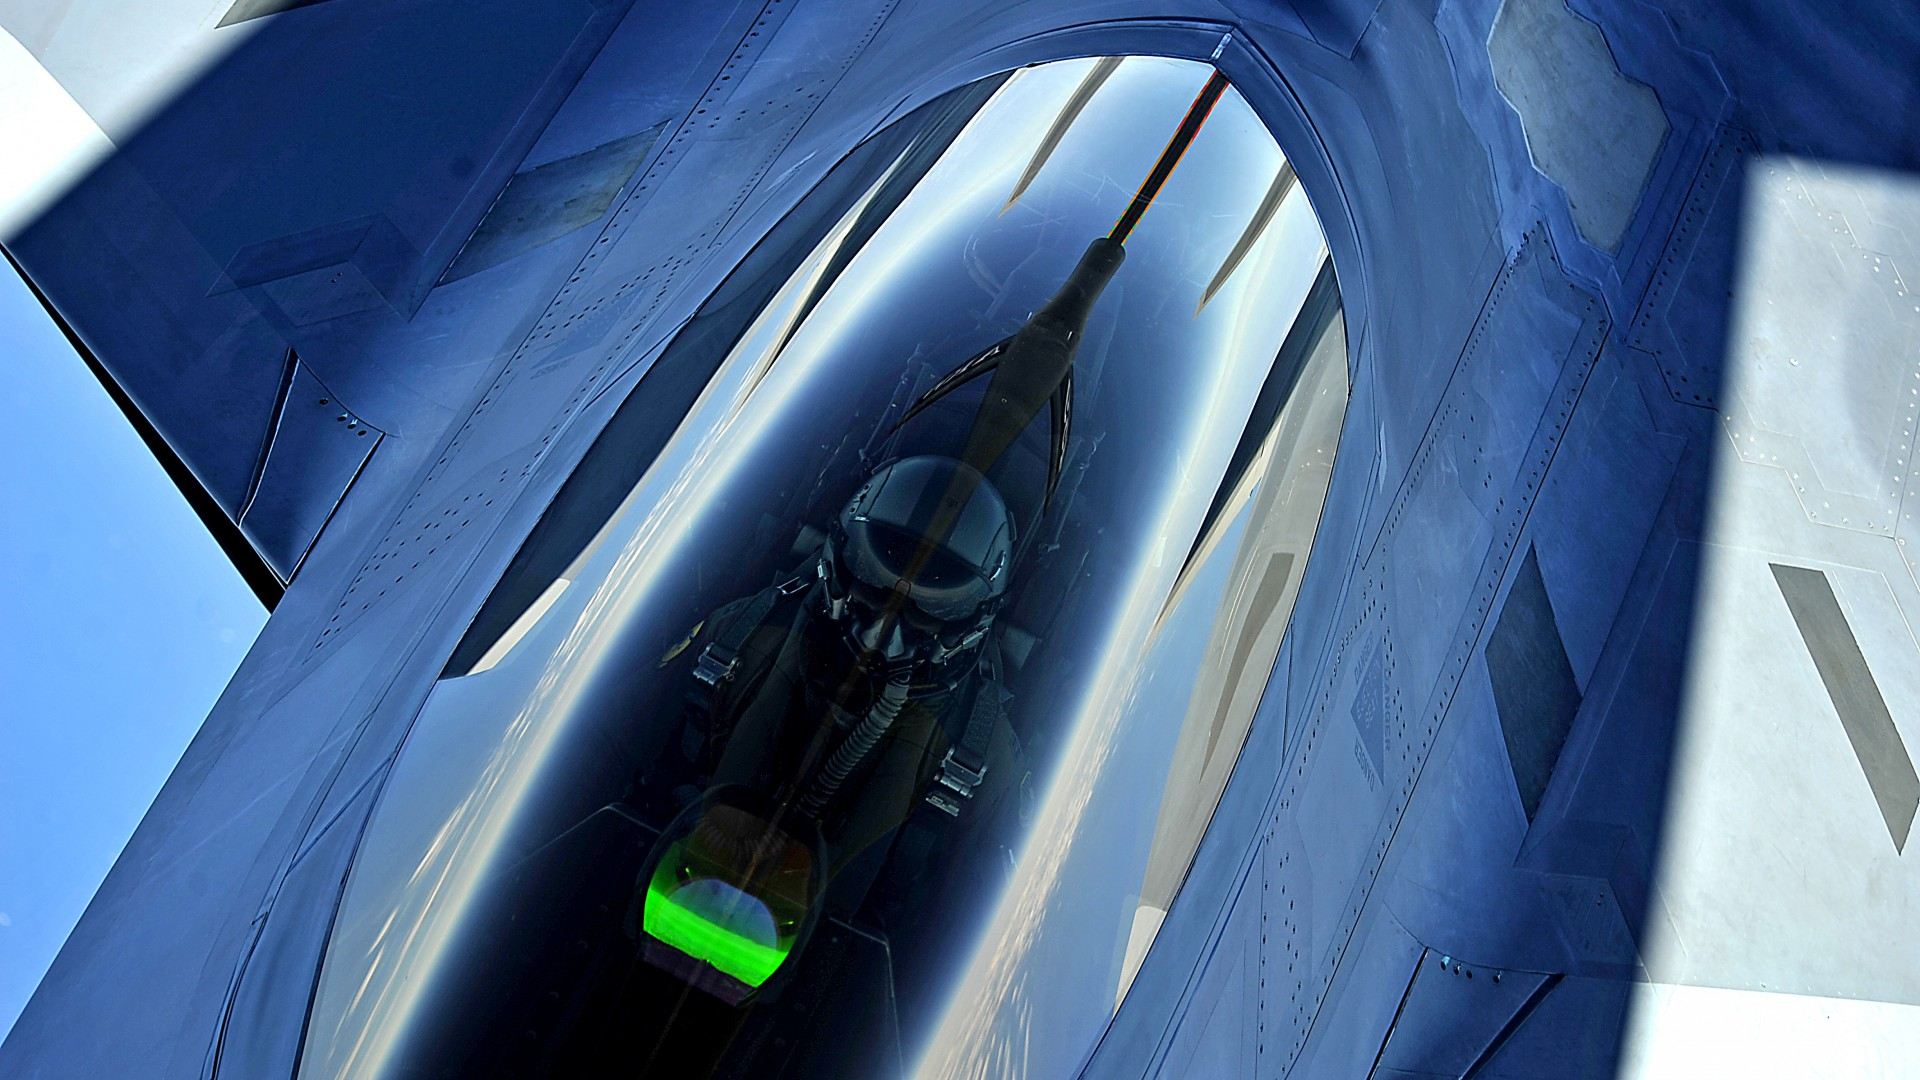 F-22, Raptor, Lockheed, Martin, stealth, air superiority fighter, U.S. Air Force, pilot (horizontal)